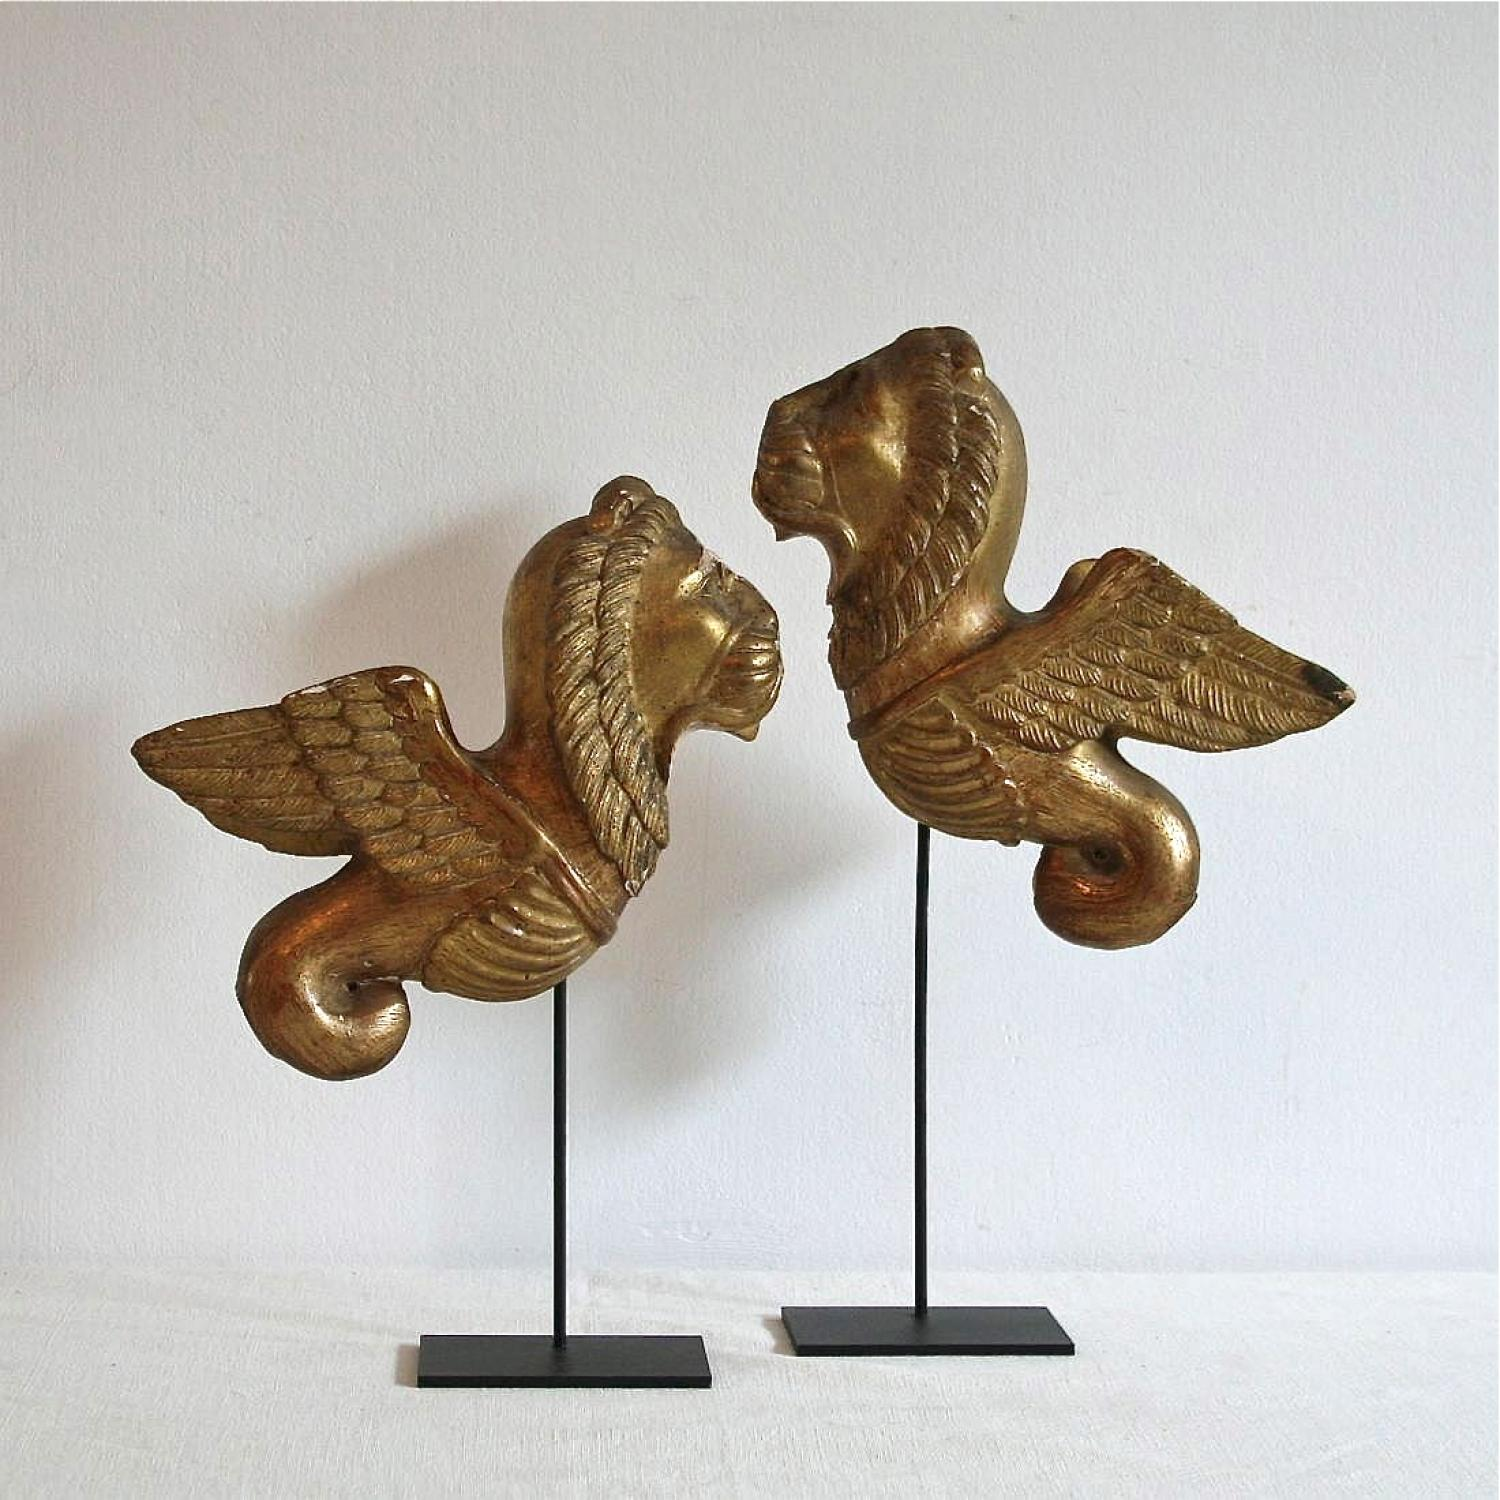 PAIR OF HAND CARVED MYTHOLOGICAL CREATURES